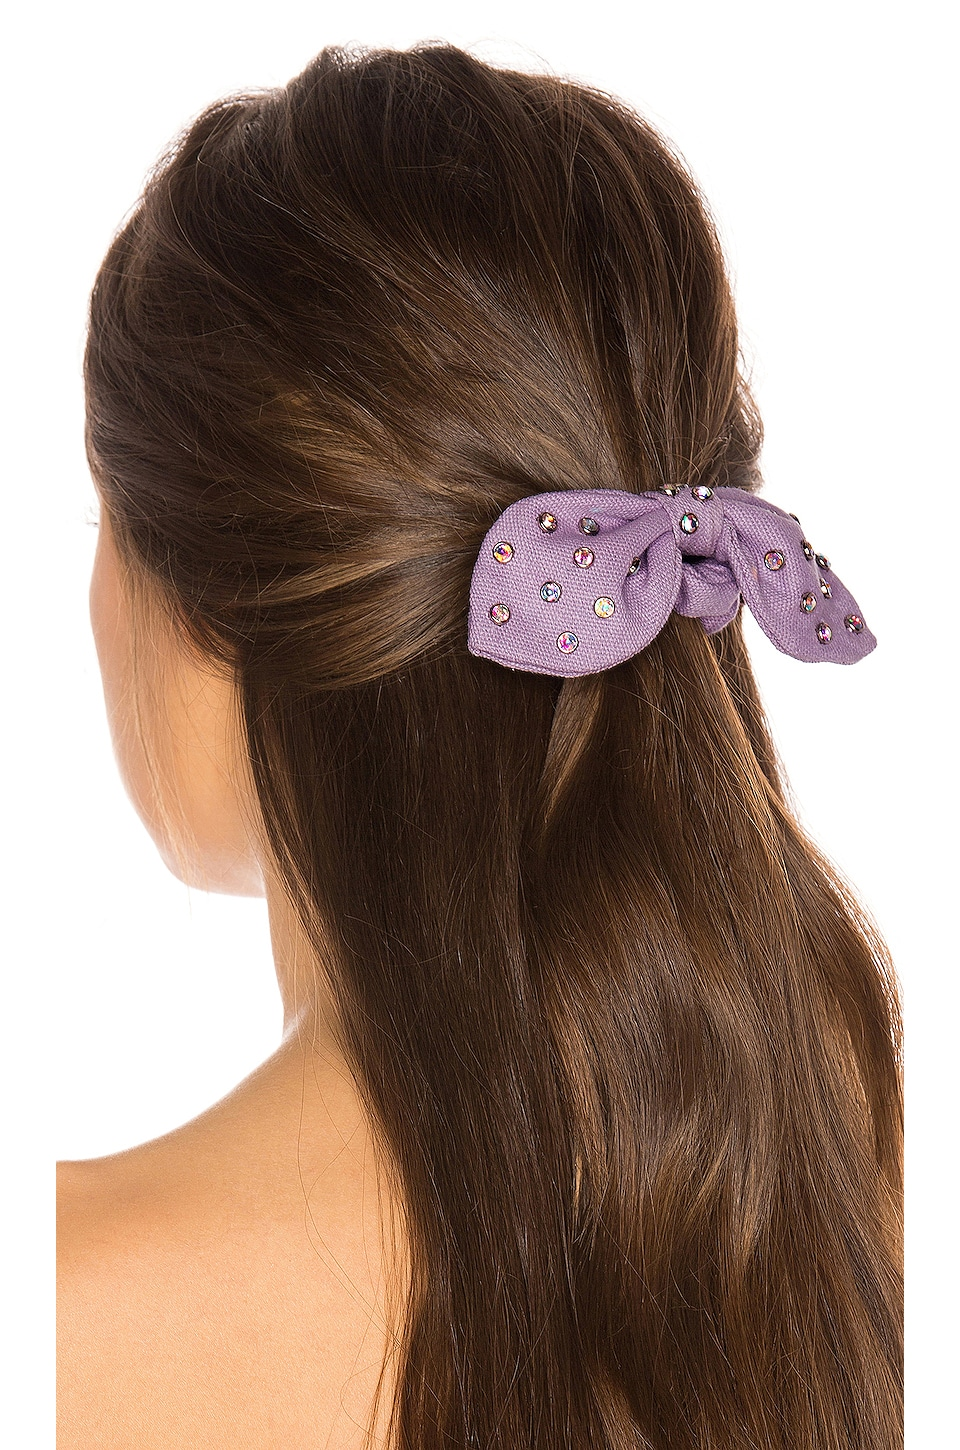 Lele Sadoughi Crystal Woven Scrunchie in Lilac